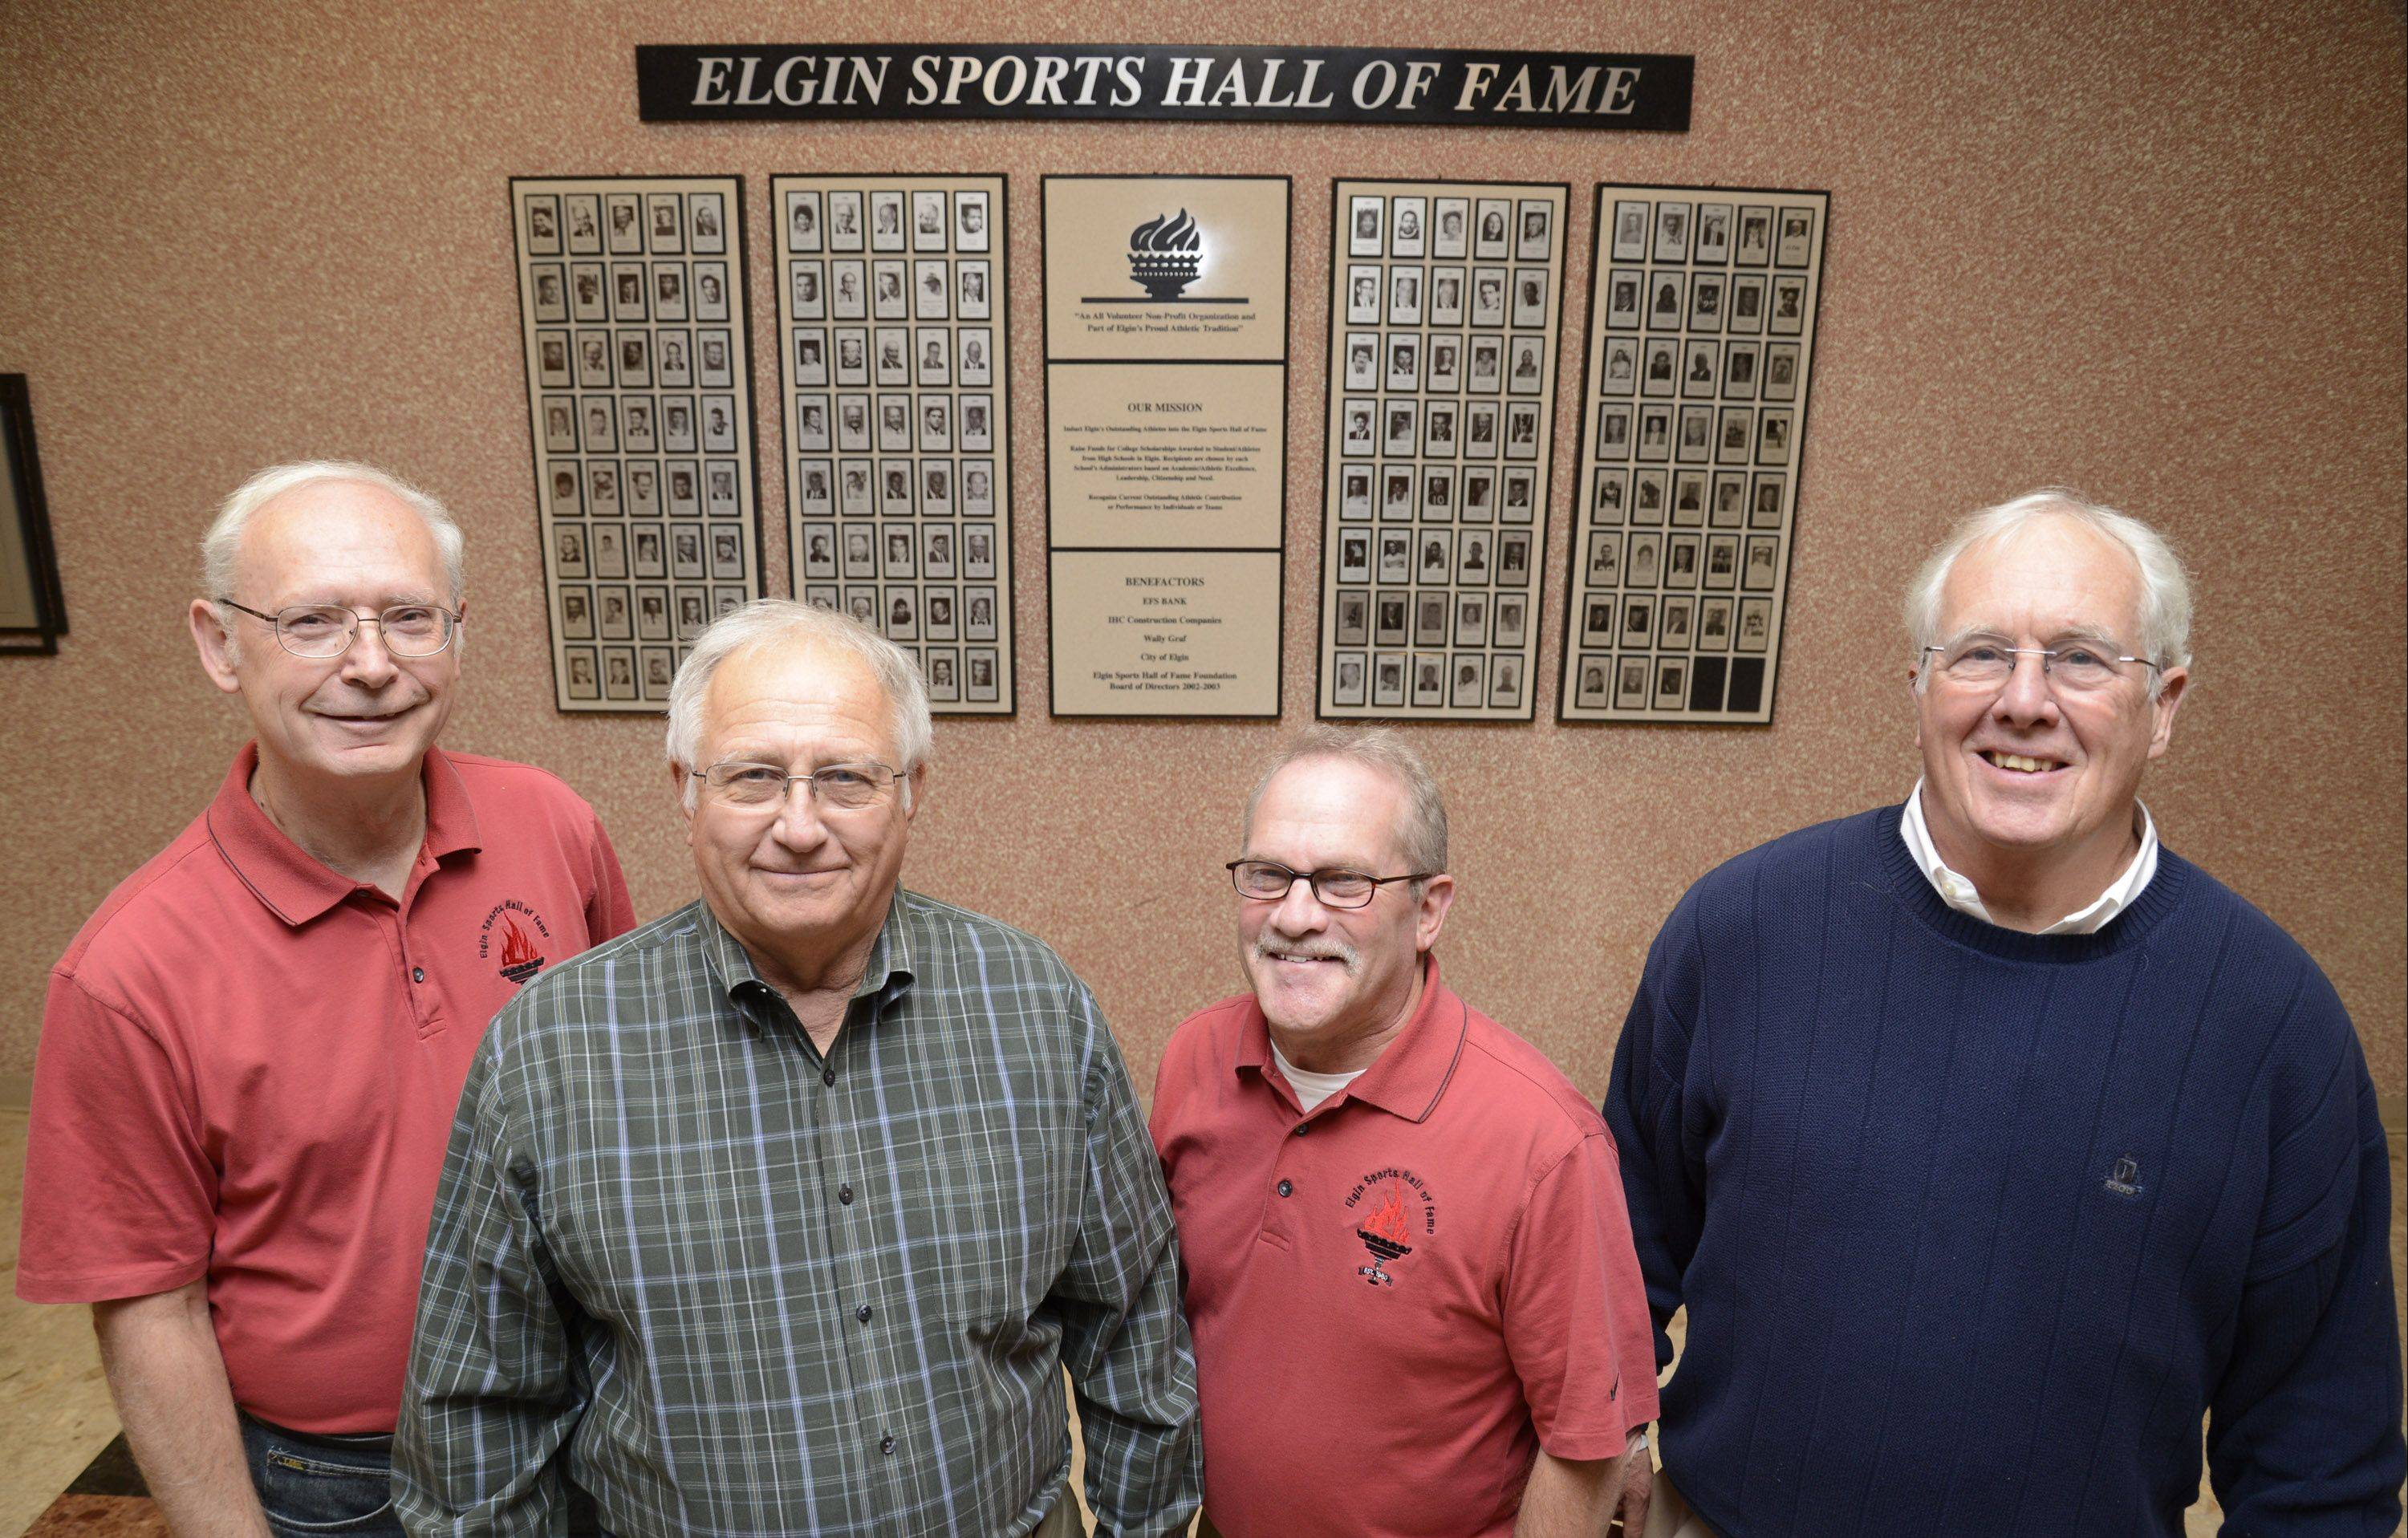 Elgin Sports Hall of Fame Foundation has made monumental strides